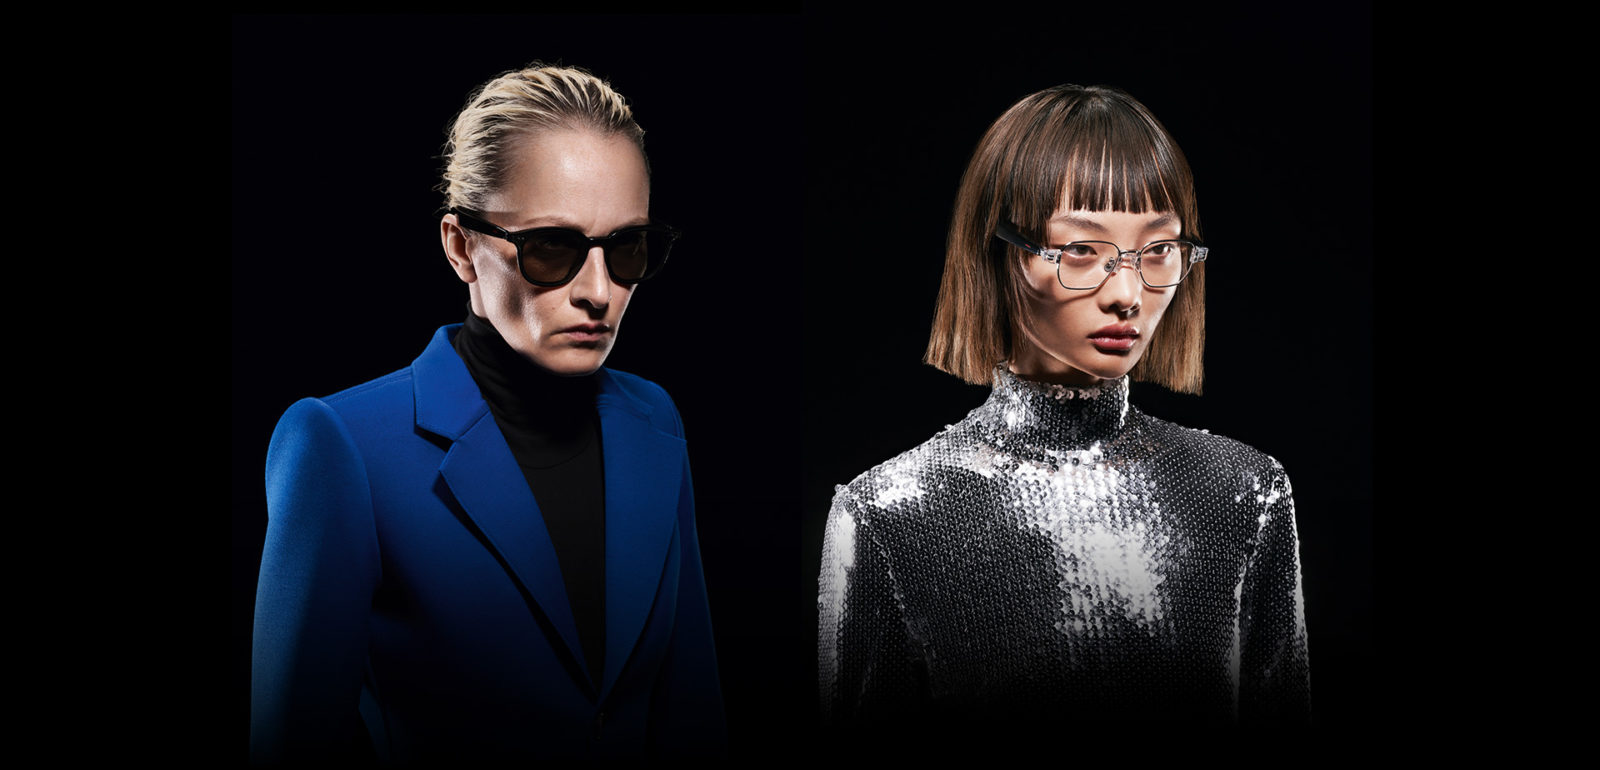 The new Huawei x Gentle Monster collection takes smart glasses to the next level